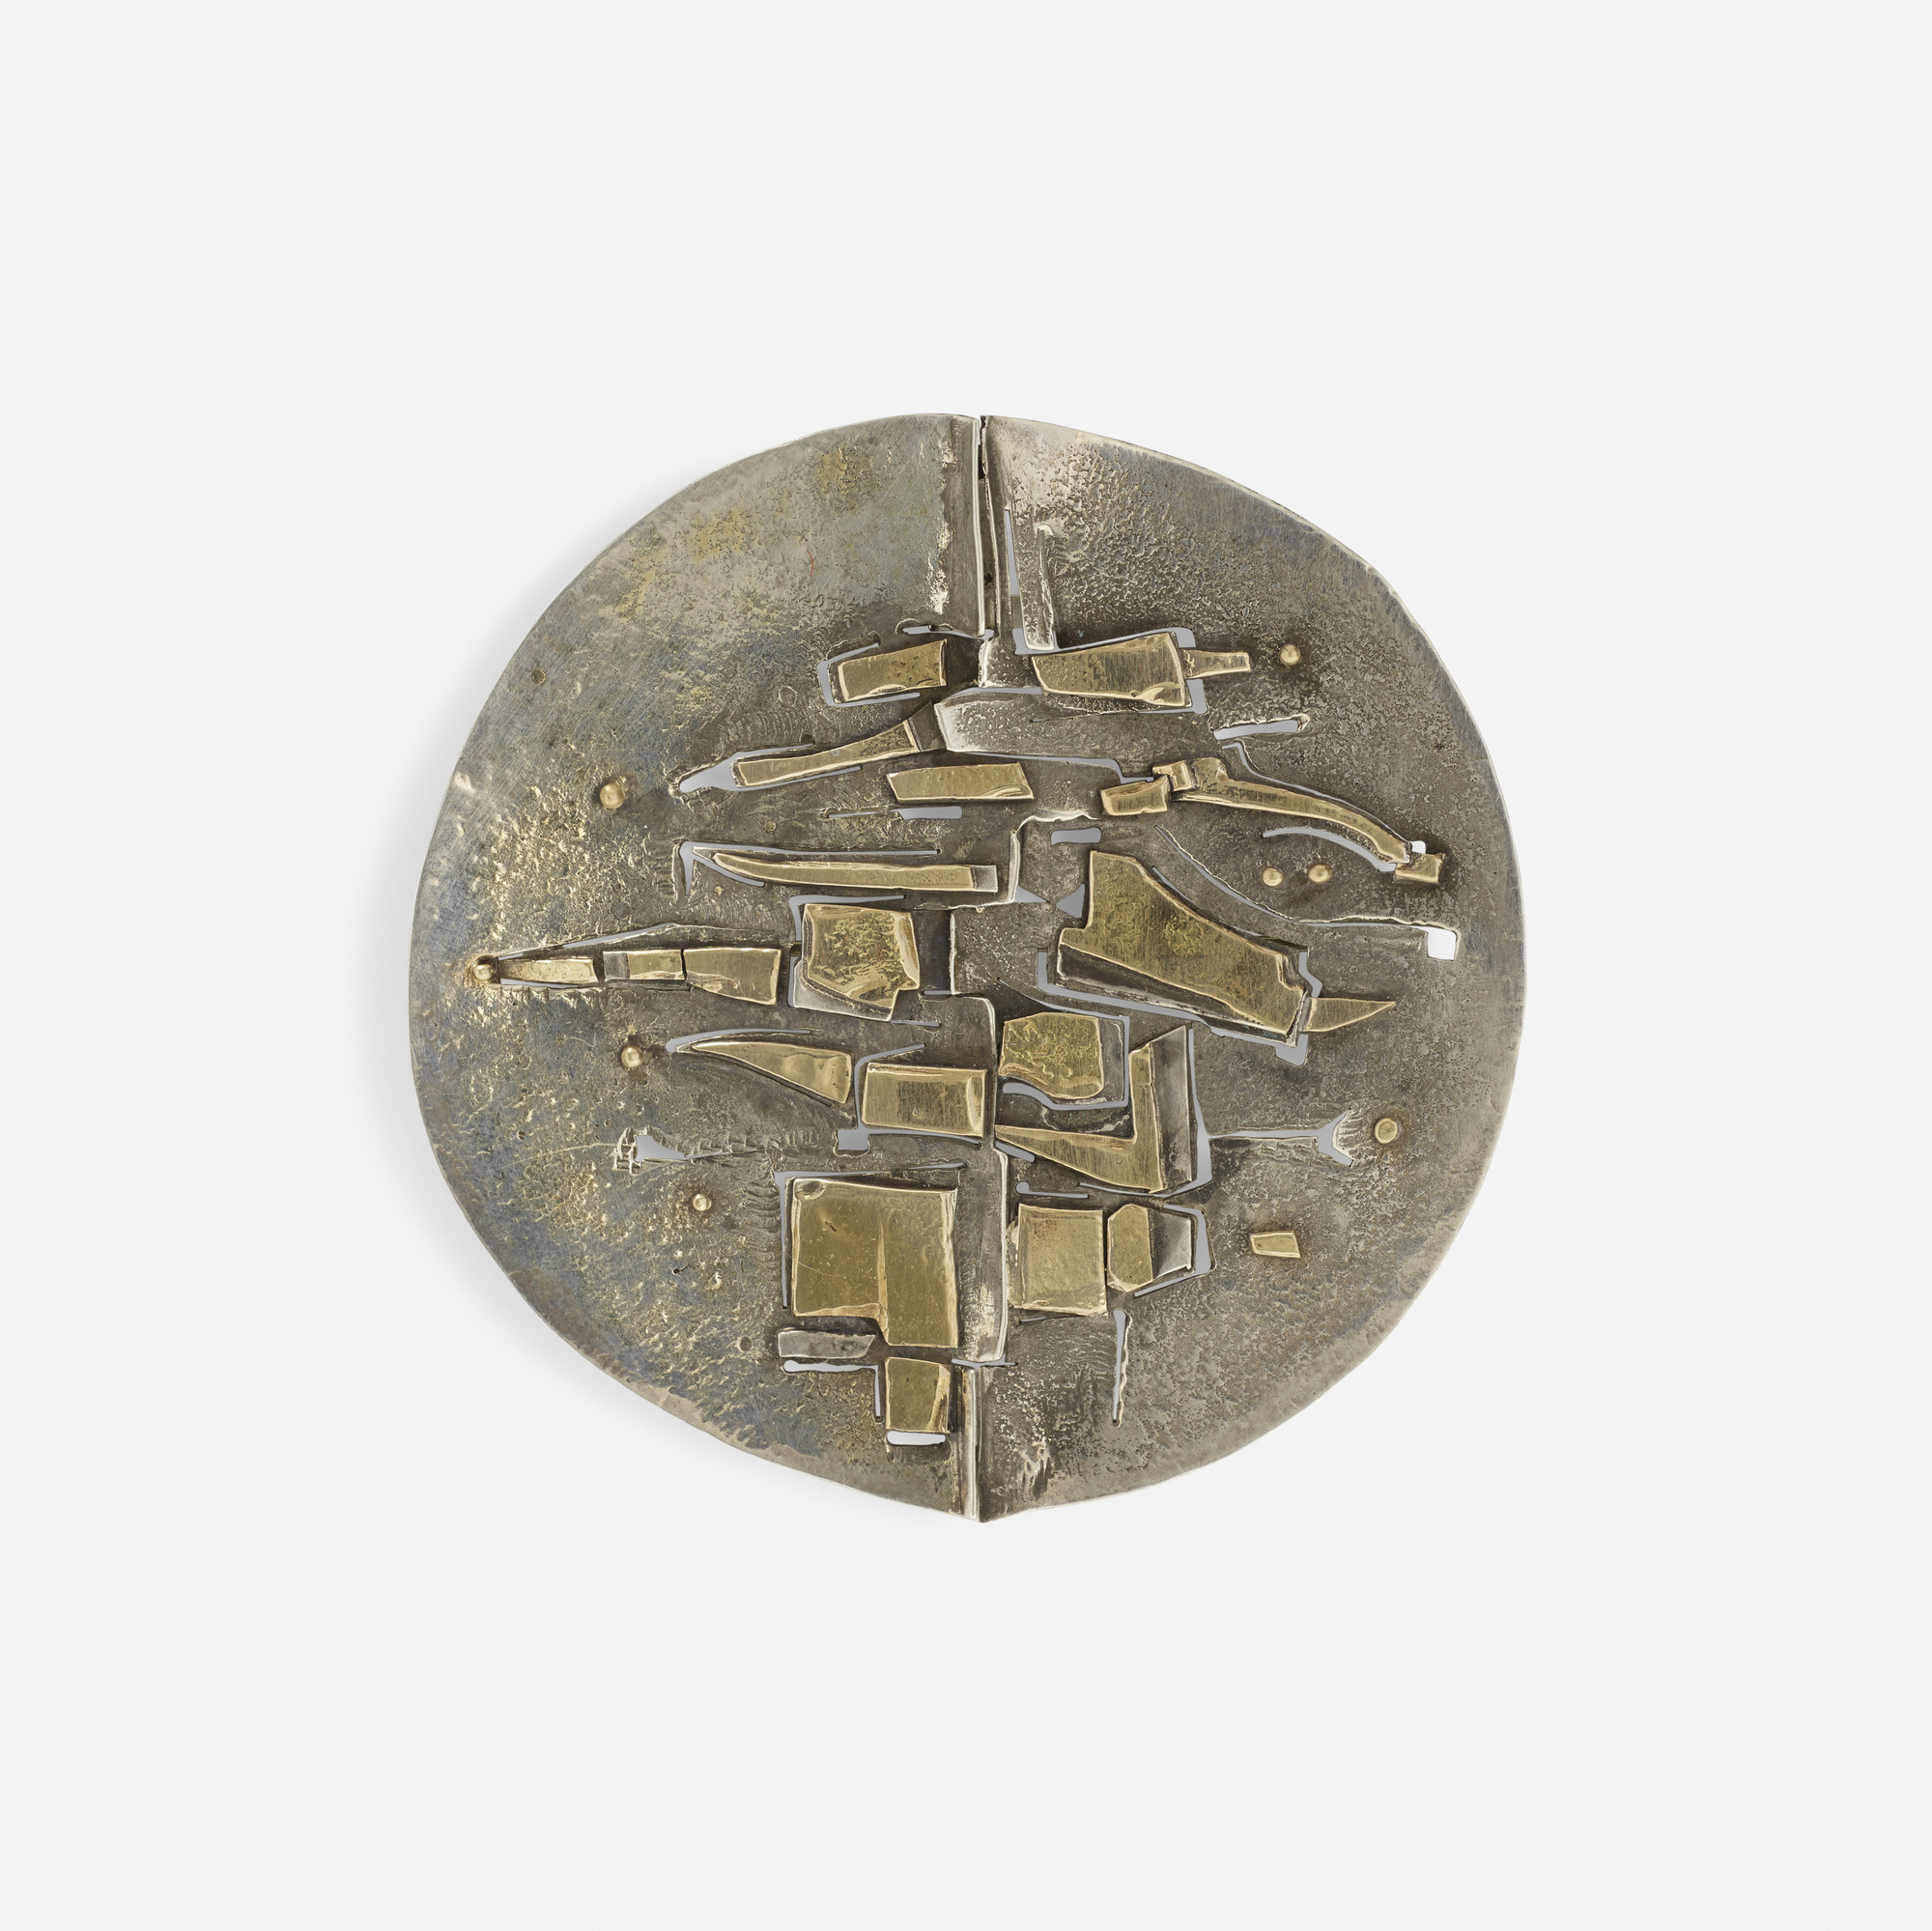 283: Karl Stittgen / A gold-plated brooch (1 of 1)